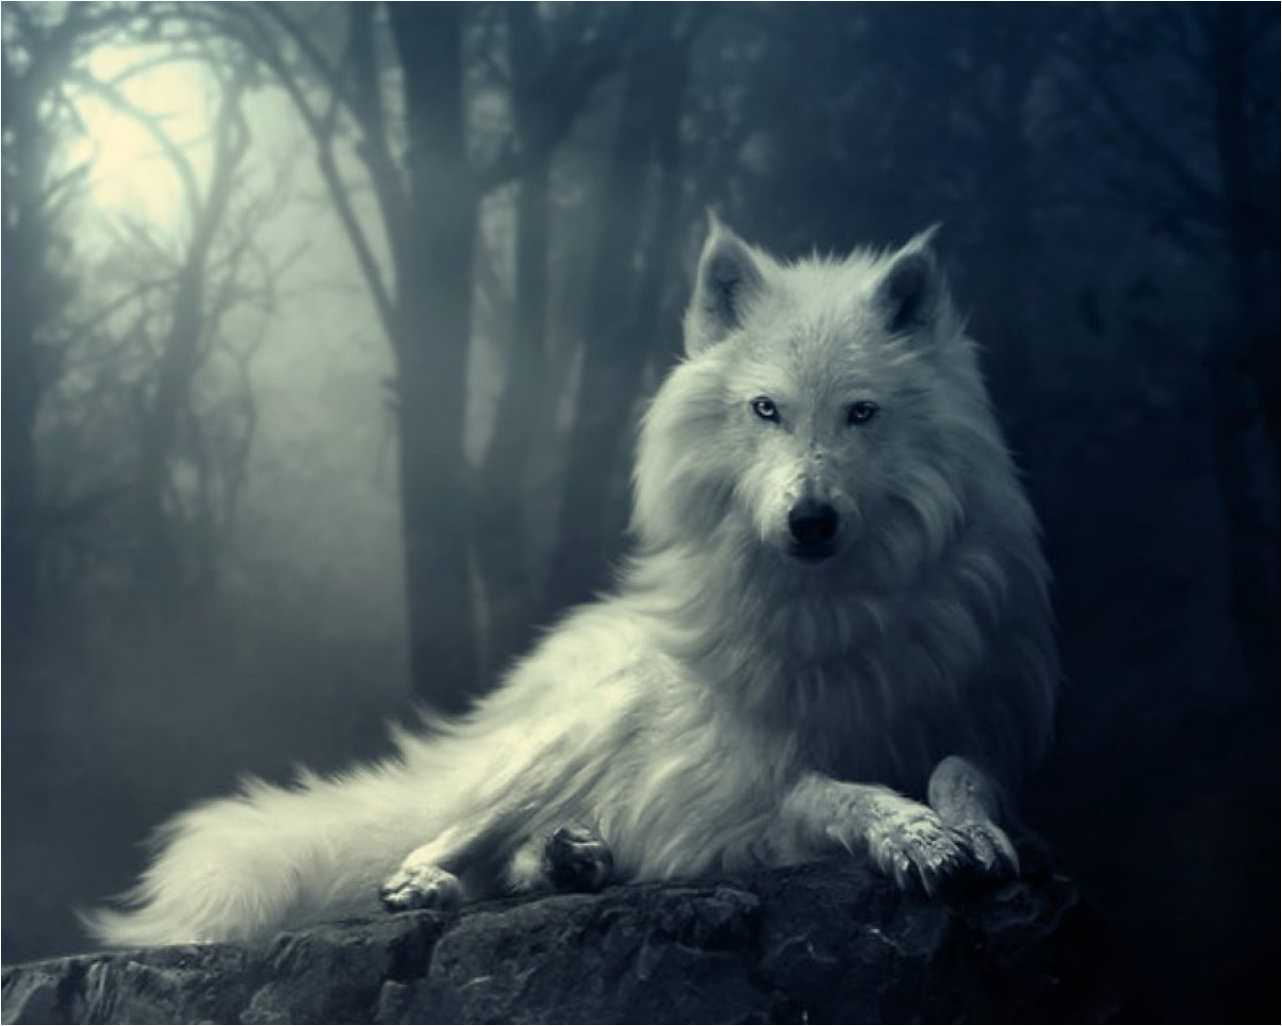 100% Quality Hd Wallpapers, Pictures - Love Best Wolf Quotes - HD Wallpaper